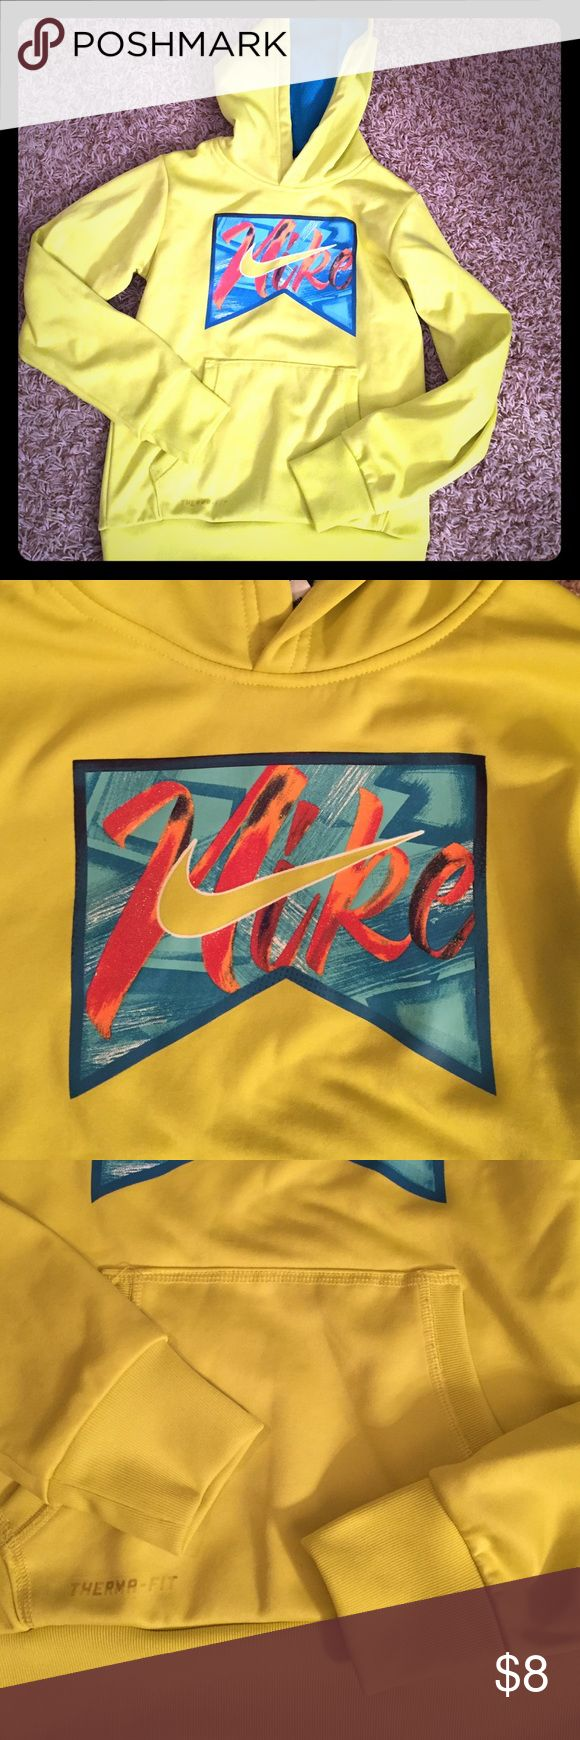 Girls Nike neon yellow sweatshirt, size S Silky outside and warm and snugly on the inside, this sweatshirt is a must for your little lady!  The hood has a teal mesh hood lining.  100% polyester. Nike Shirts & Tops Sweatshirts & Hoodies